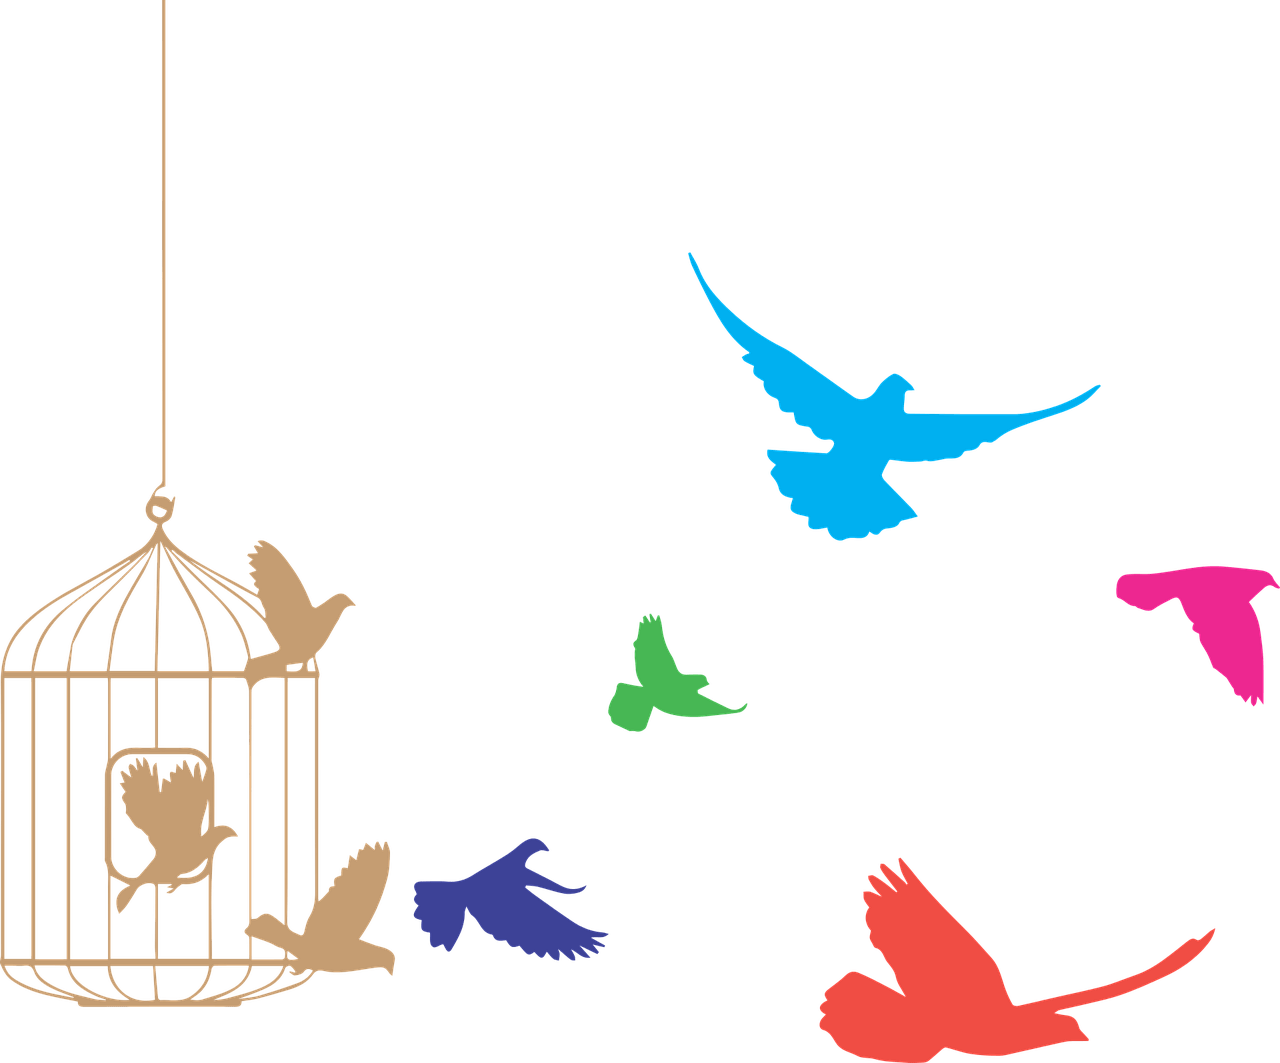 Birds flying from png. Cage clipart transparent background